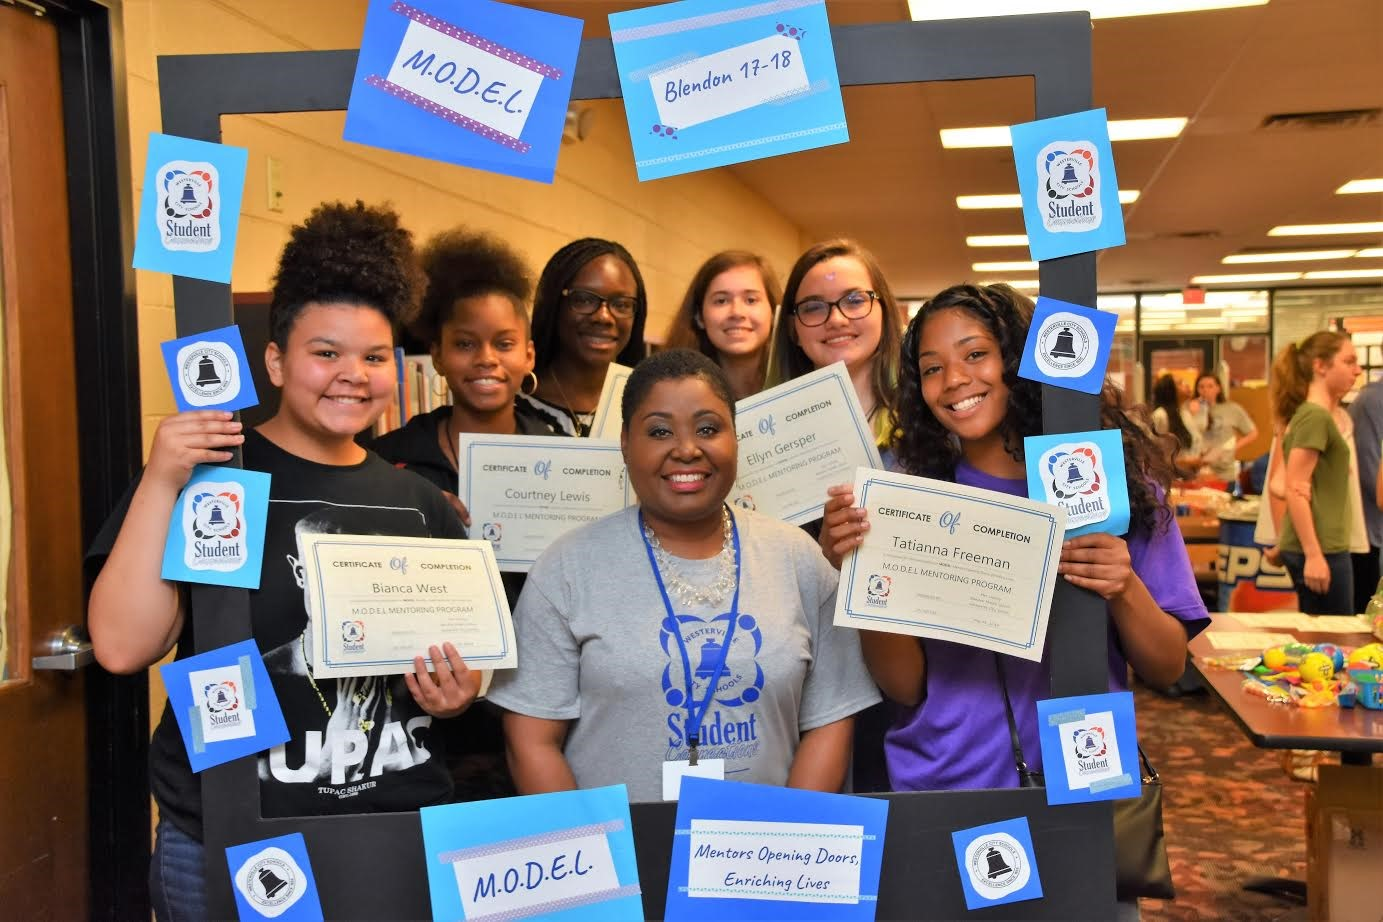 Karen Dorsey pictured with her mentees at Blendon Middle School.